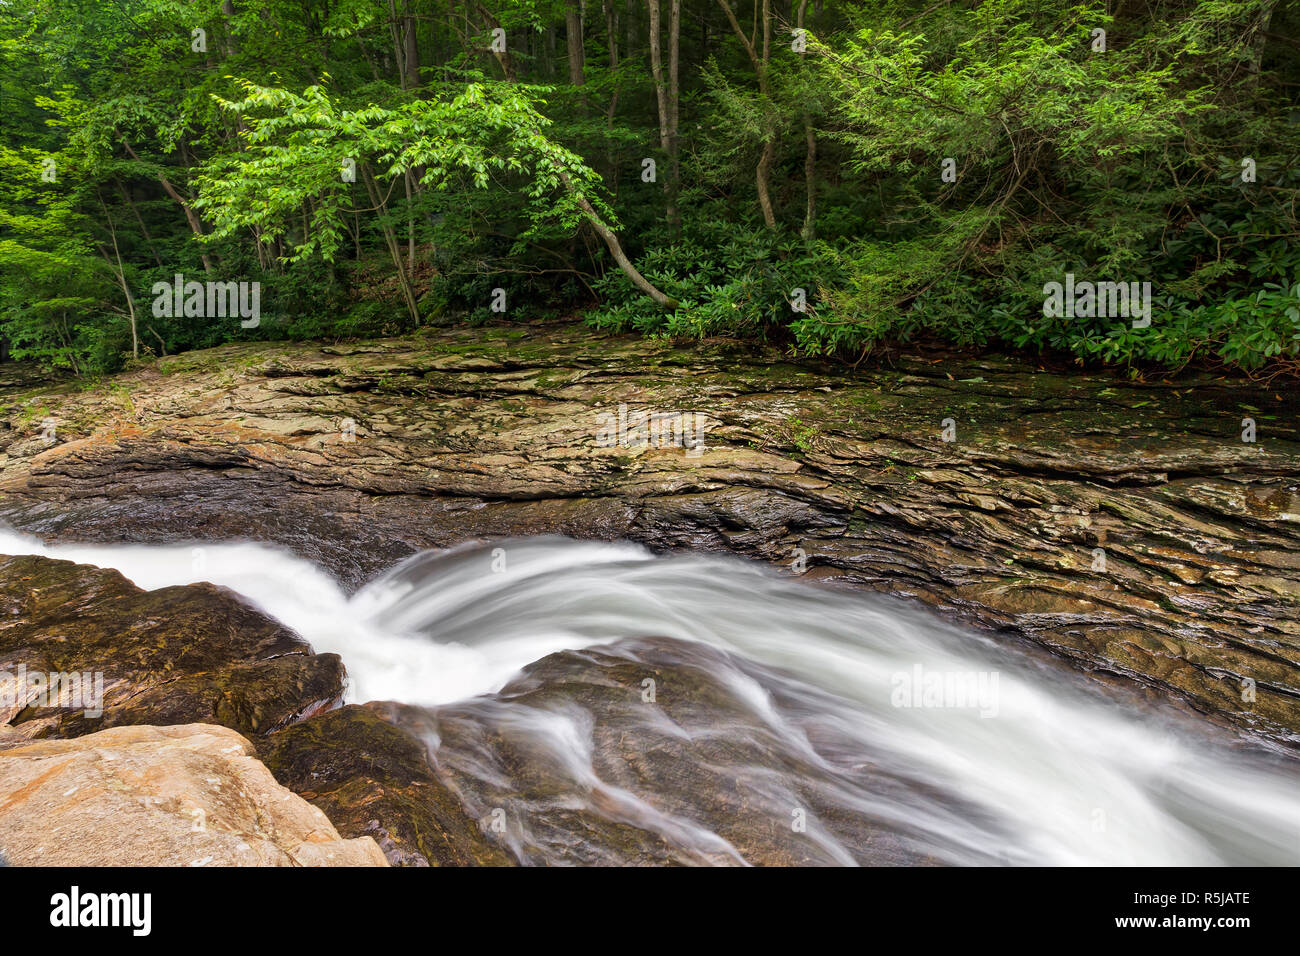 Whitewater flowing through Meadow Run has carved a narrow channel into the rock that is used  as a recreational water slide in the Pennsylvania Laurel Stock Photo